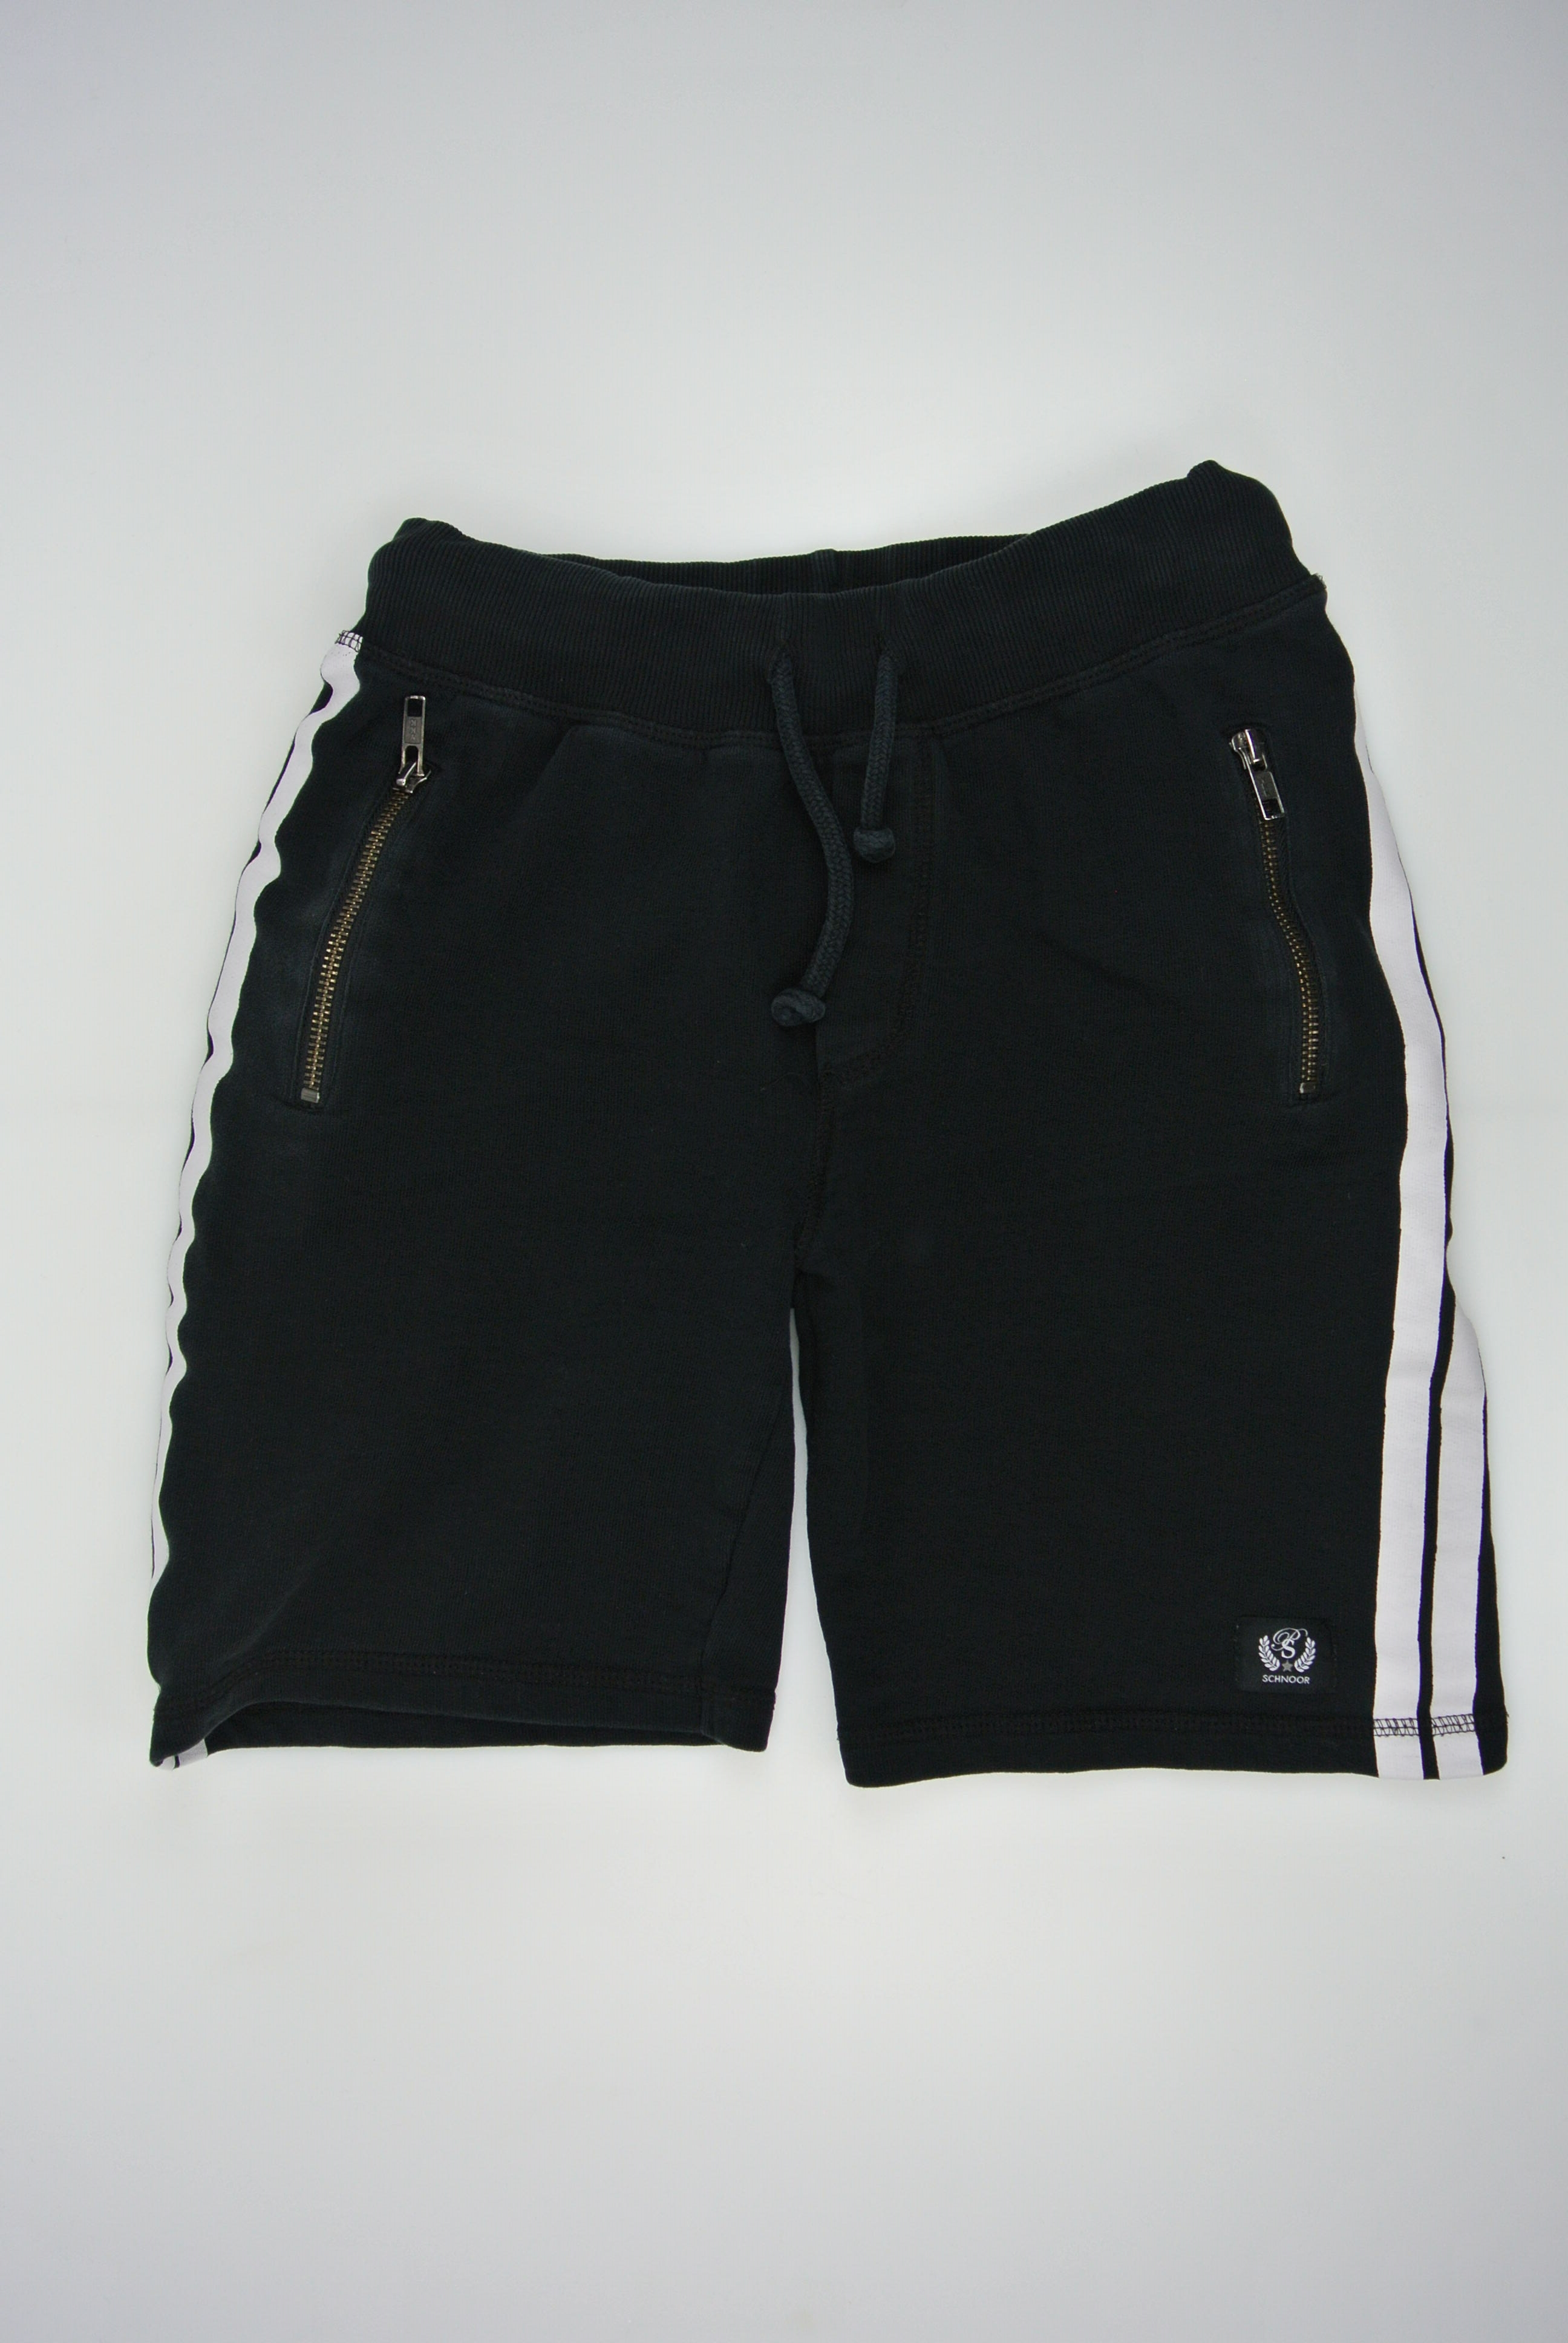 Petit by Sofie schnoor shorts str 152 dreng